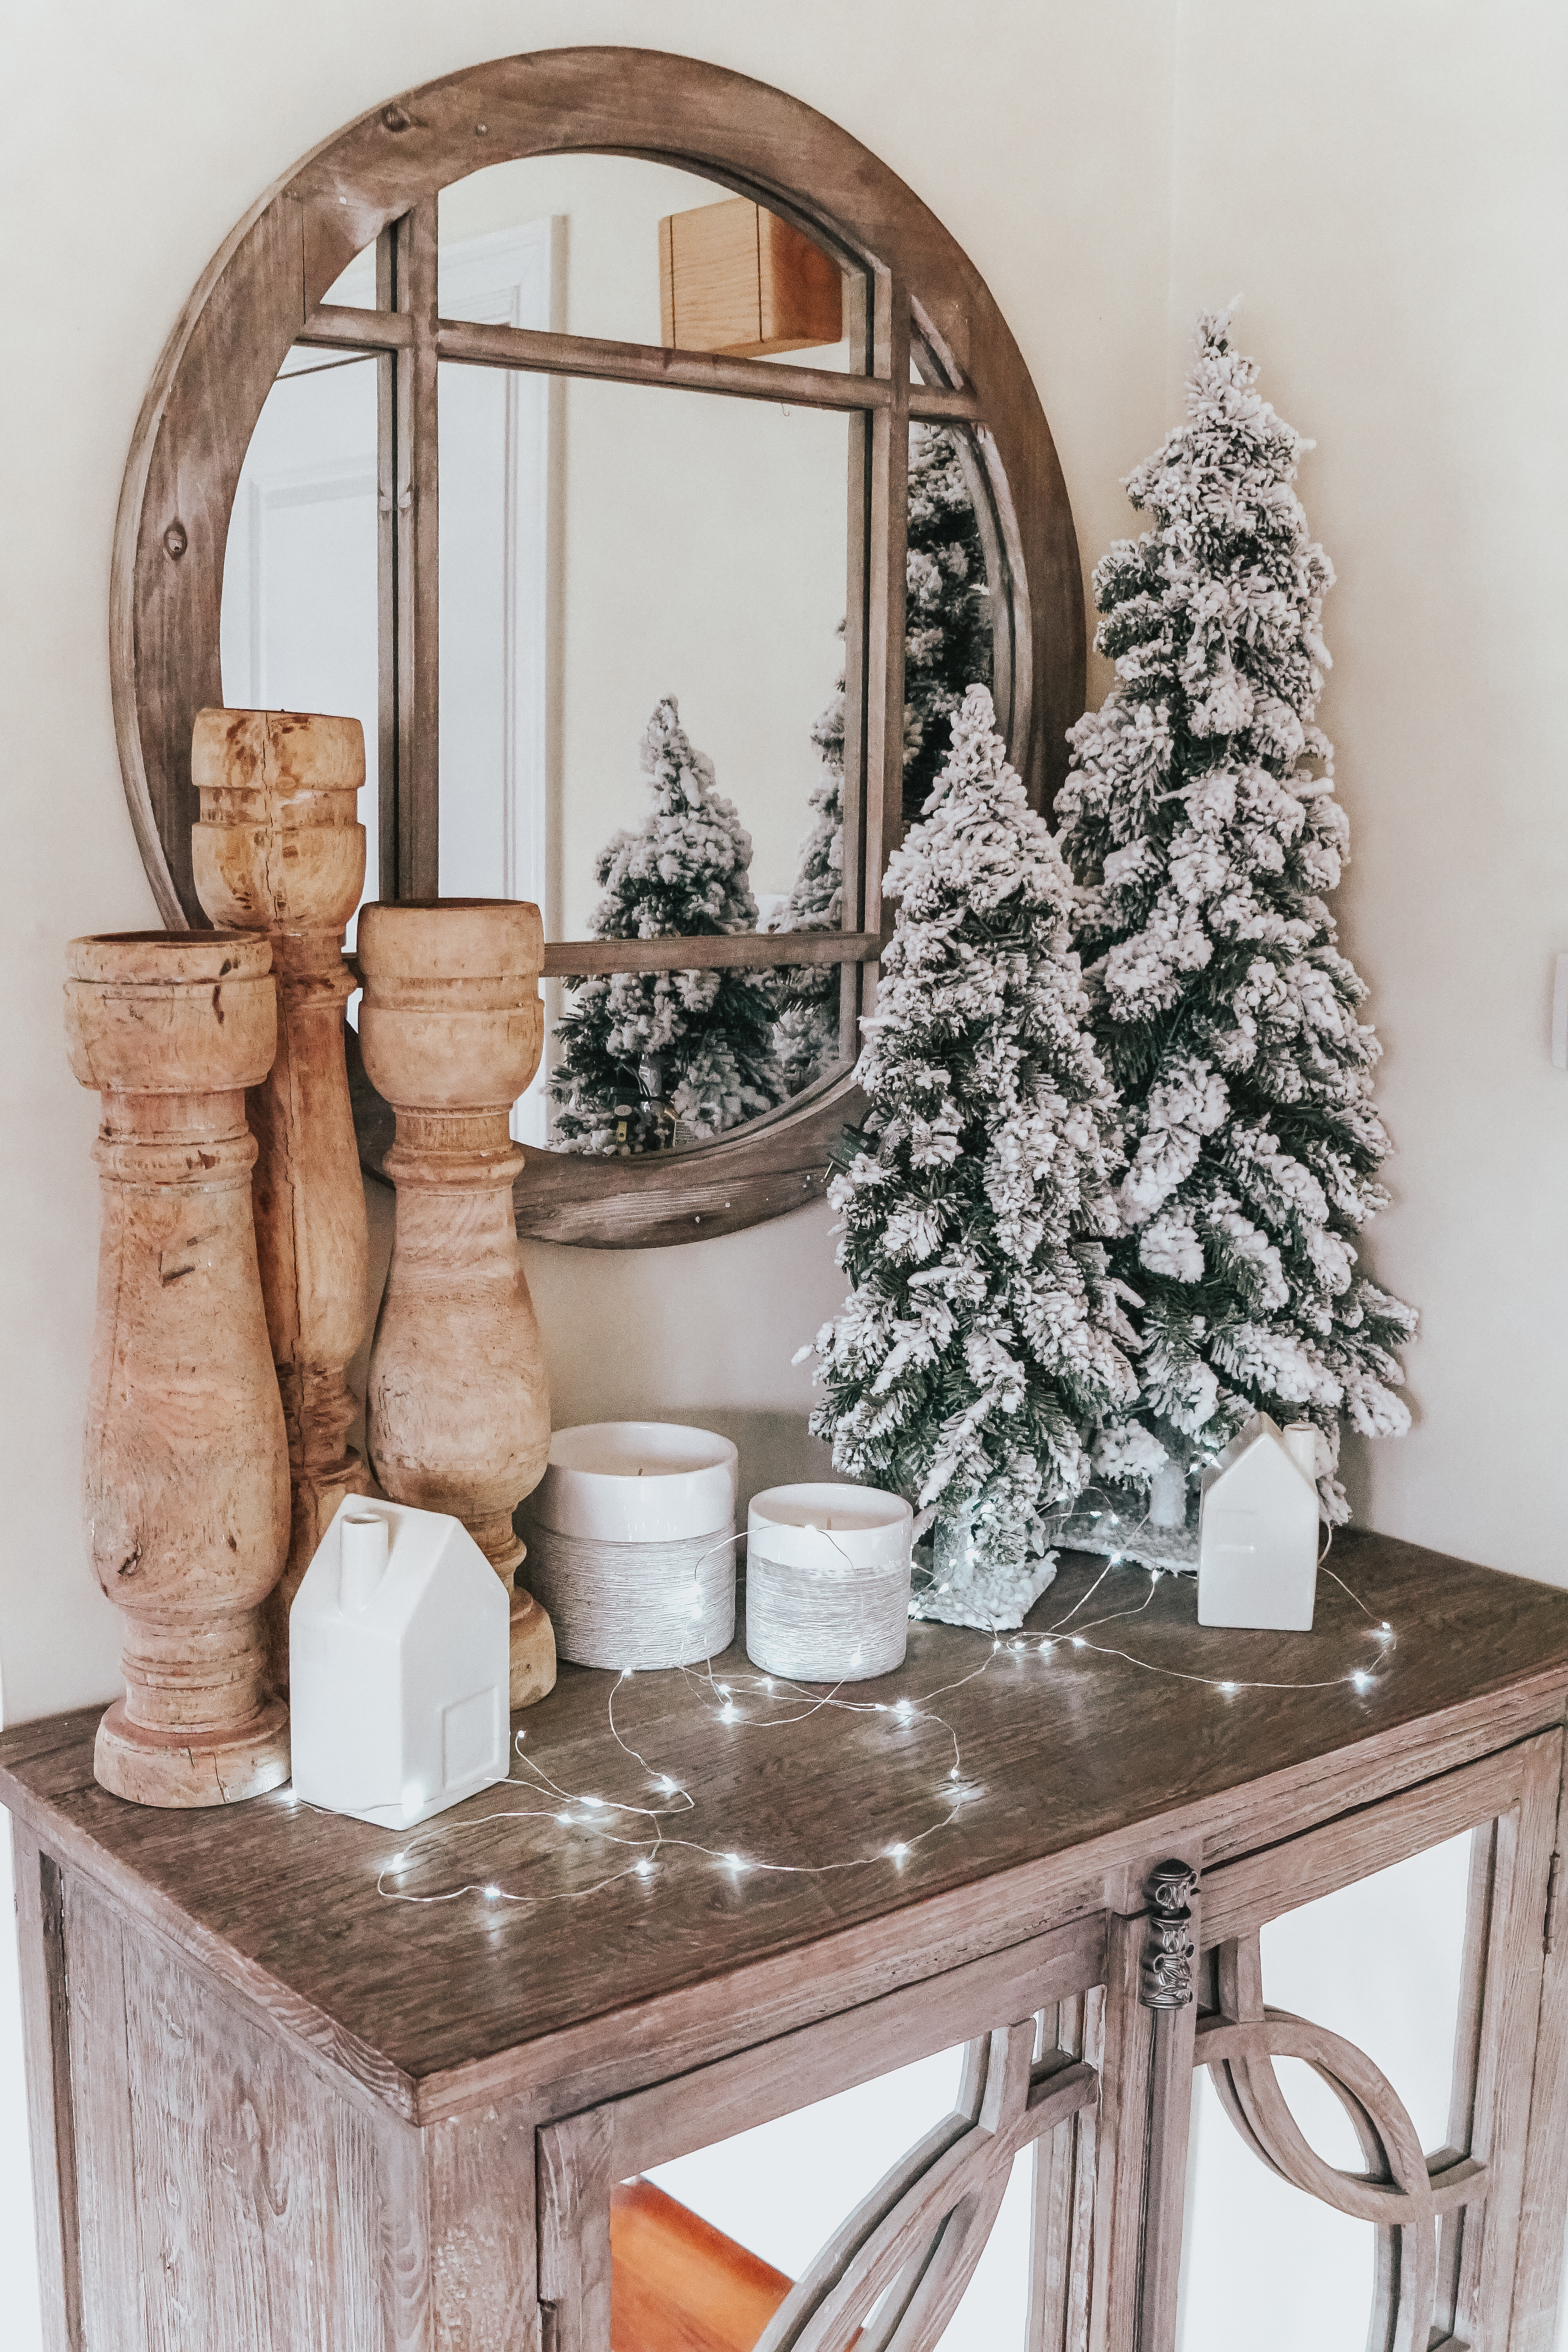 Everyone loves bundle up and be all cozy this season! Well, it is the perfect time of year to make your house that way too with this cozy winter home decor!